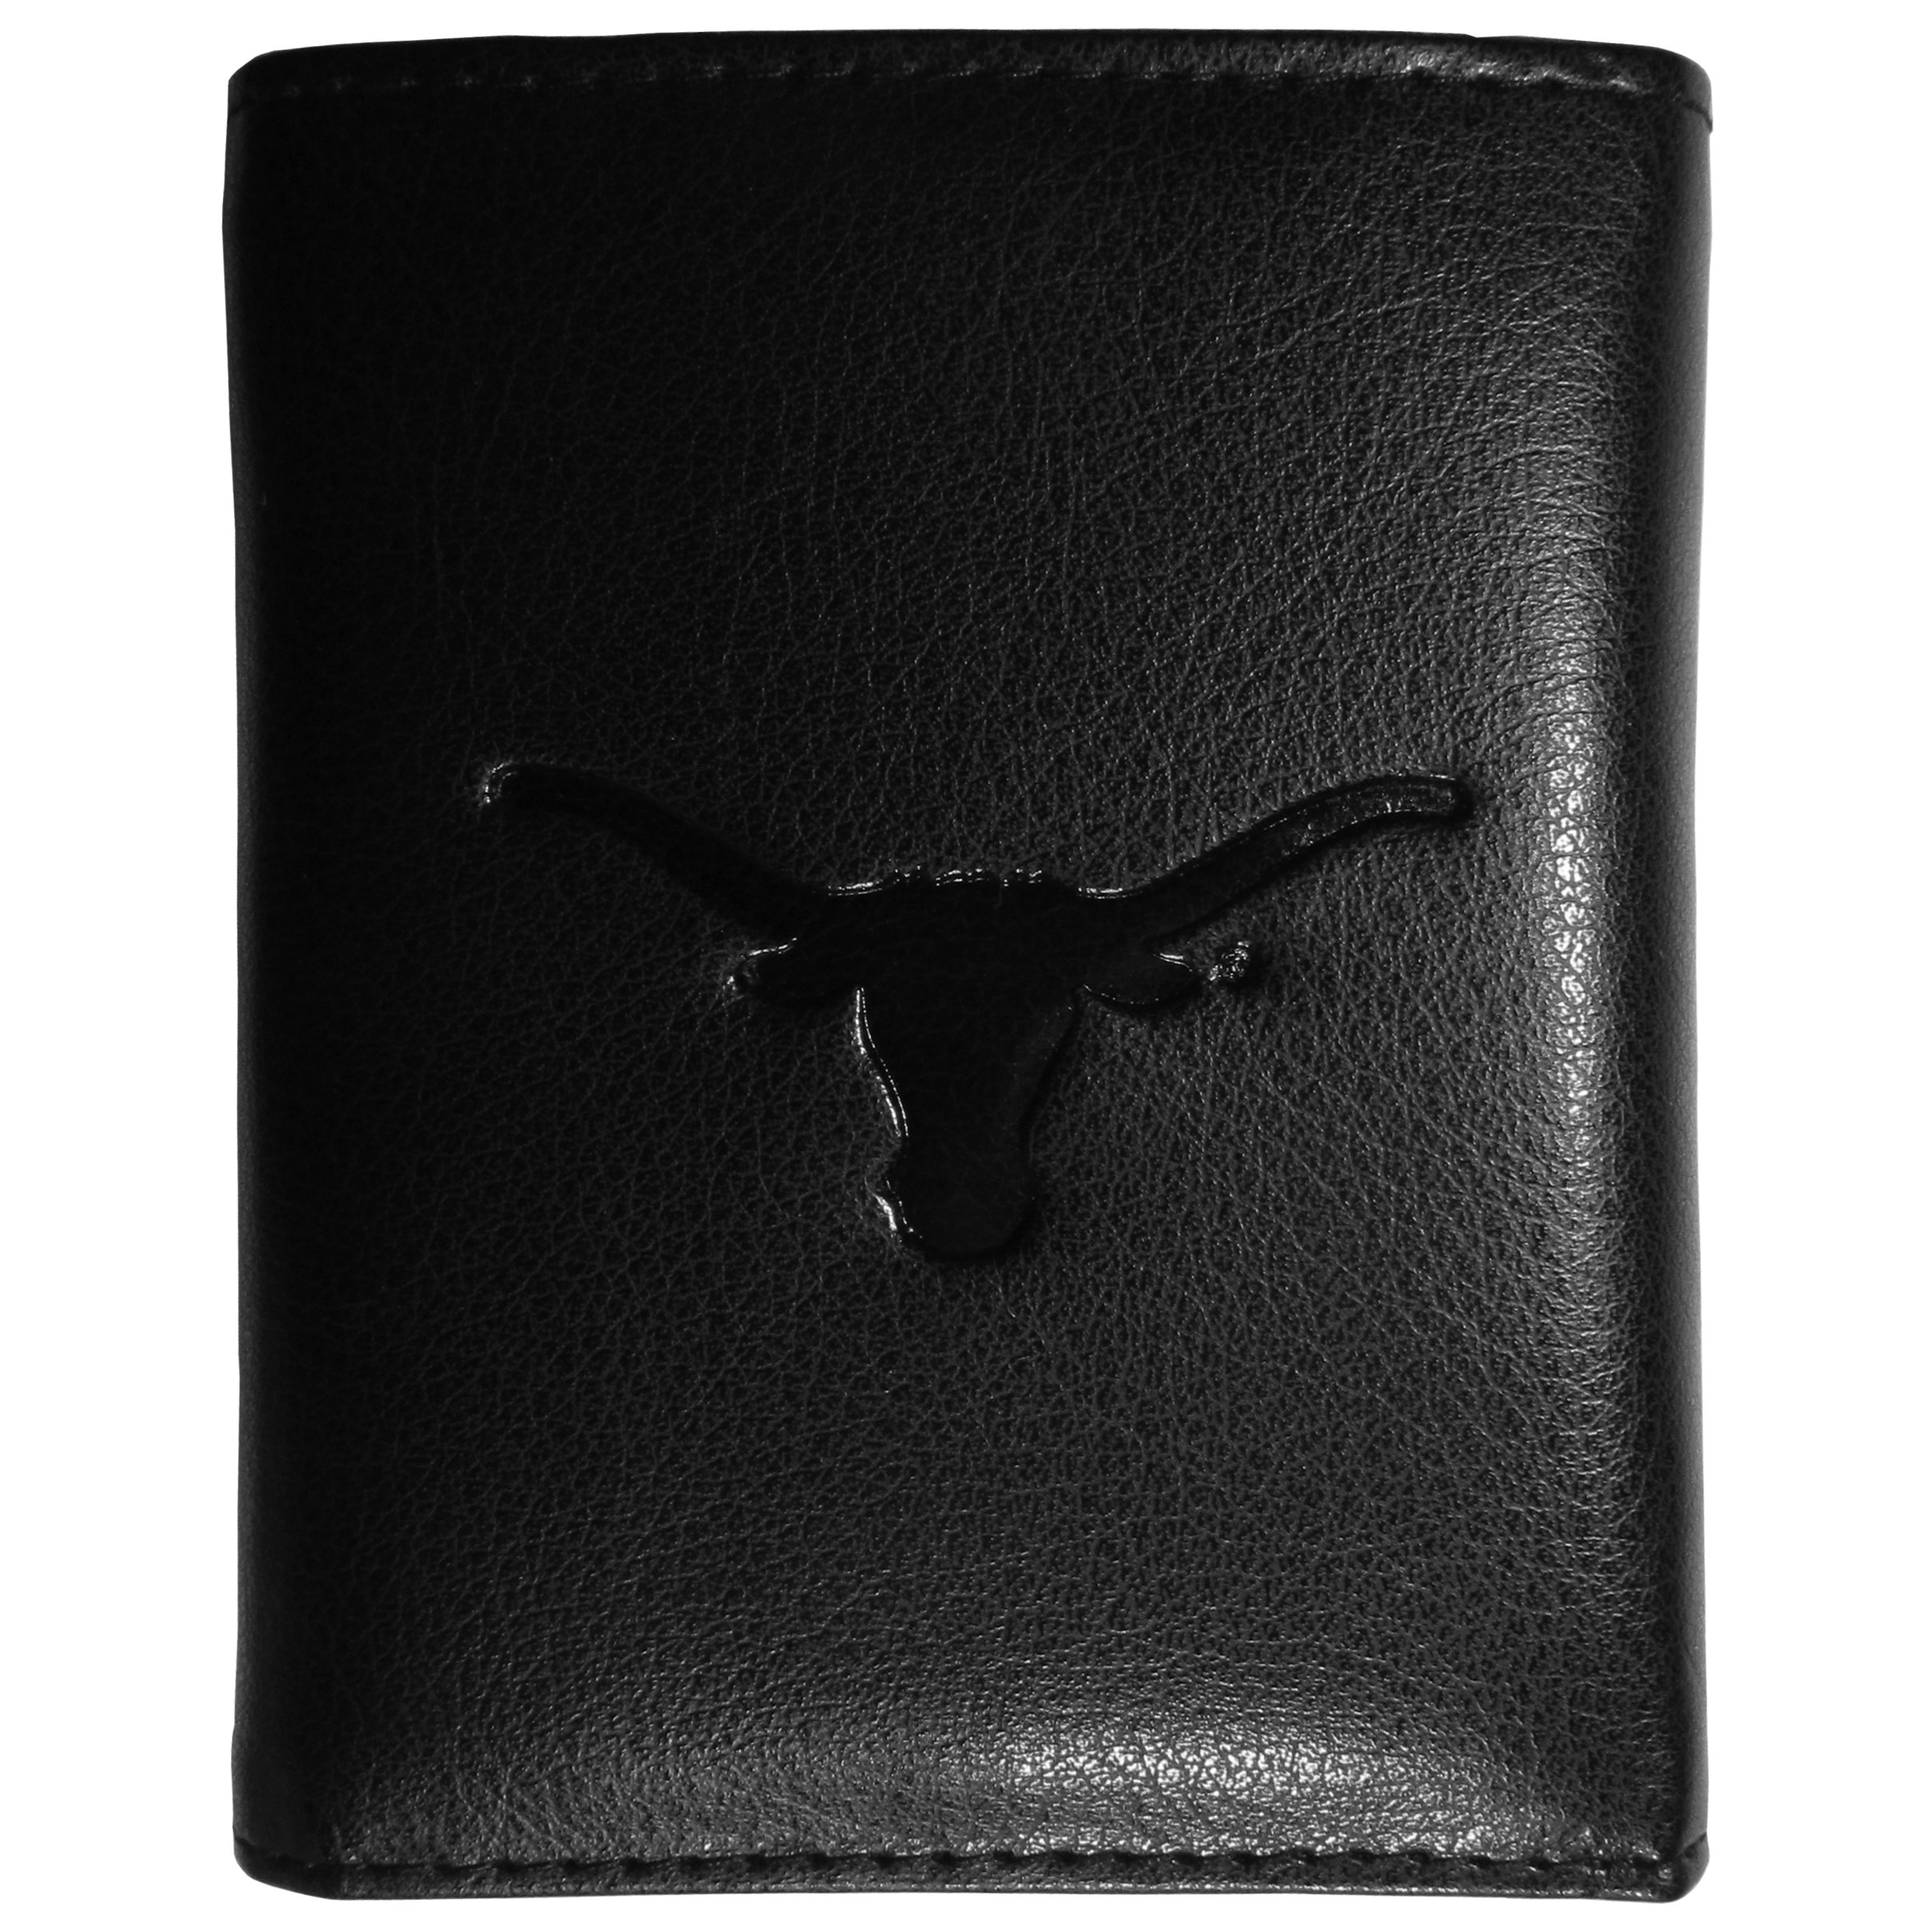 Texas Longhorns Embossed Leather Tri-fold Wallet - This stylish leather wallet is made of high quality leather with a supple feel and classic look. The front of the tri-fold style wallet has a deeply embossed Texas Longhorns logo. The billfold is packed with features that will allow to keep organized, lots of credit card slots, windowed ID slot, large pockets for bills and a removable sleeve with extra slots for even more storage. This is a must-have men's fashion accessory that would make any fan very proud to own.